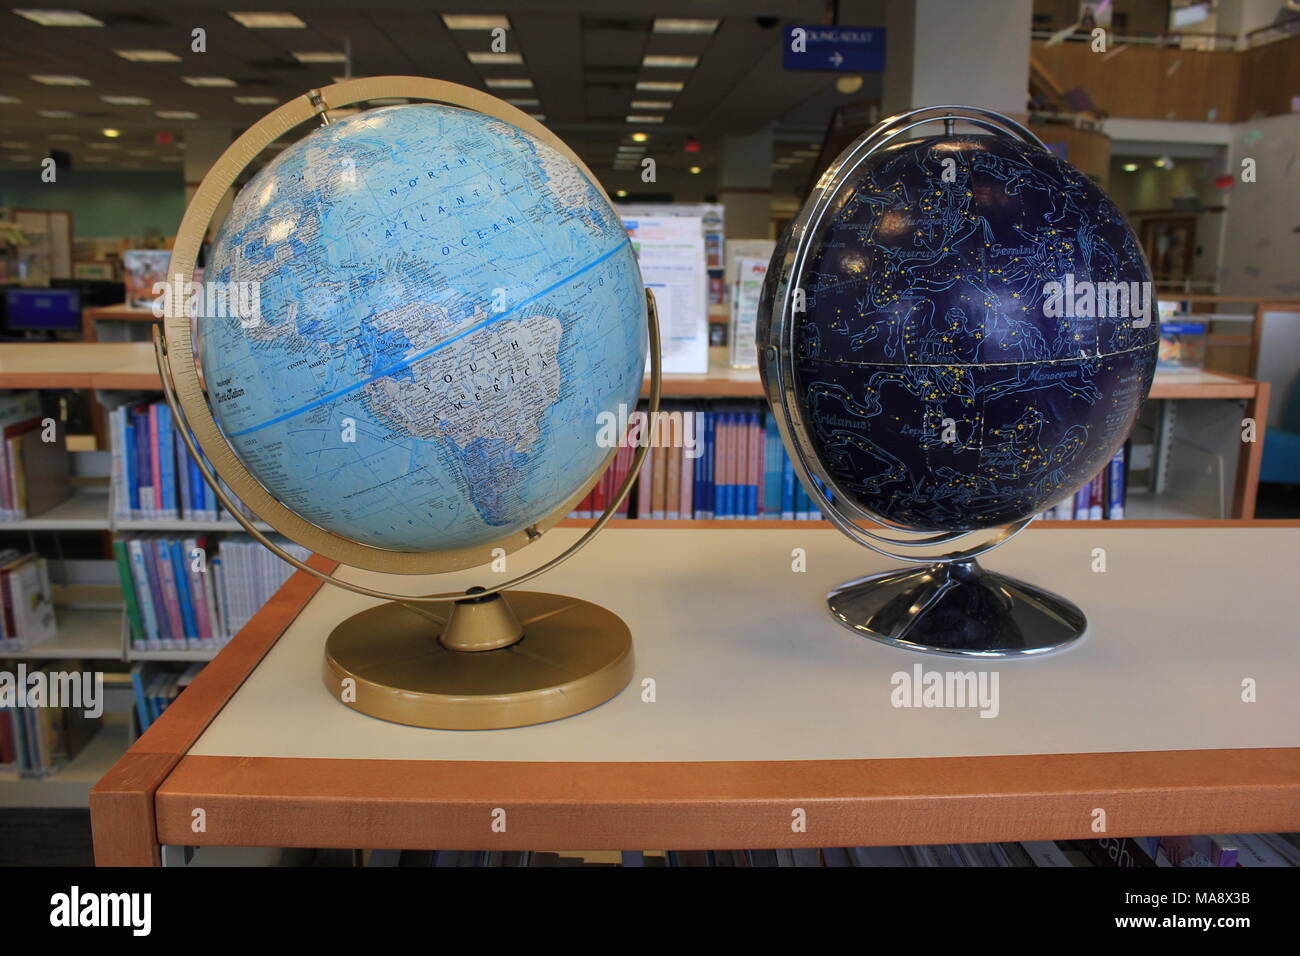 Two large globes - one earth and one sky / celestial / star system - placed on top of a bookcase at the local public library's children's department. - Stock Image